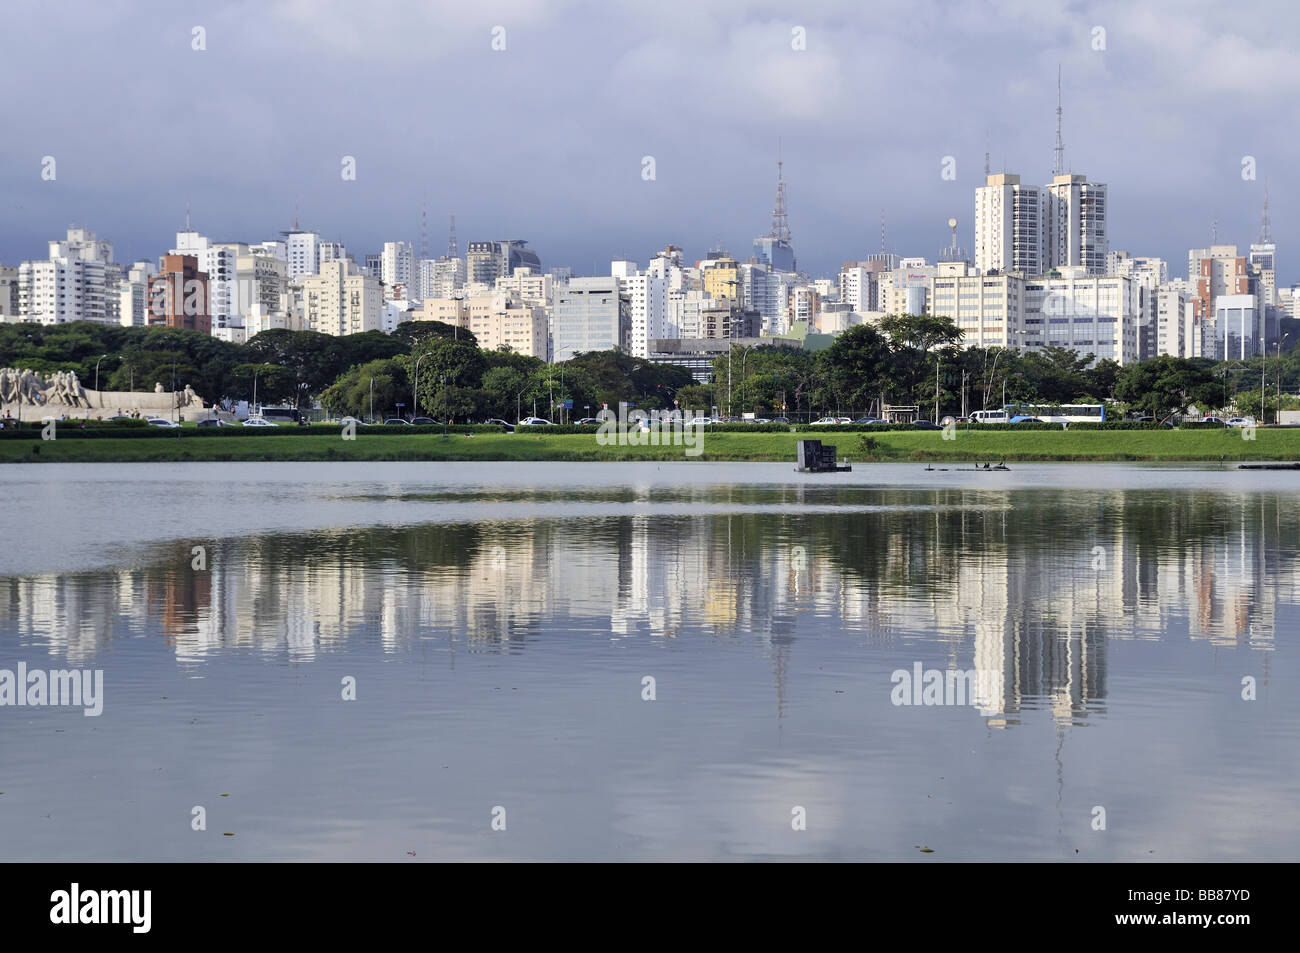 View from the Parque de Ibirapuera park on the high-rise buildings of the Zona Sul, Sao Paulo, Brazil, South America - Stock Image